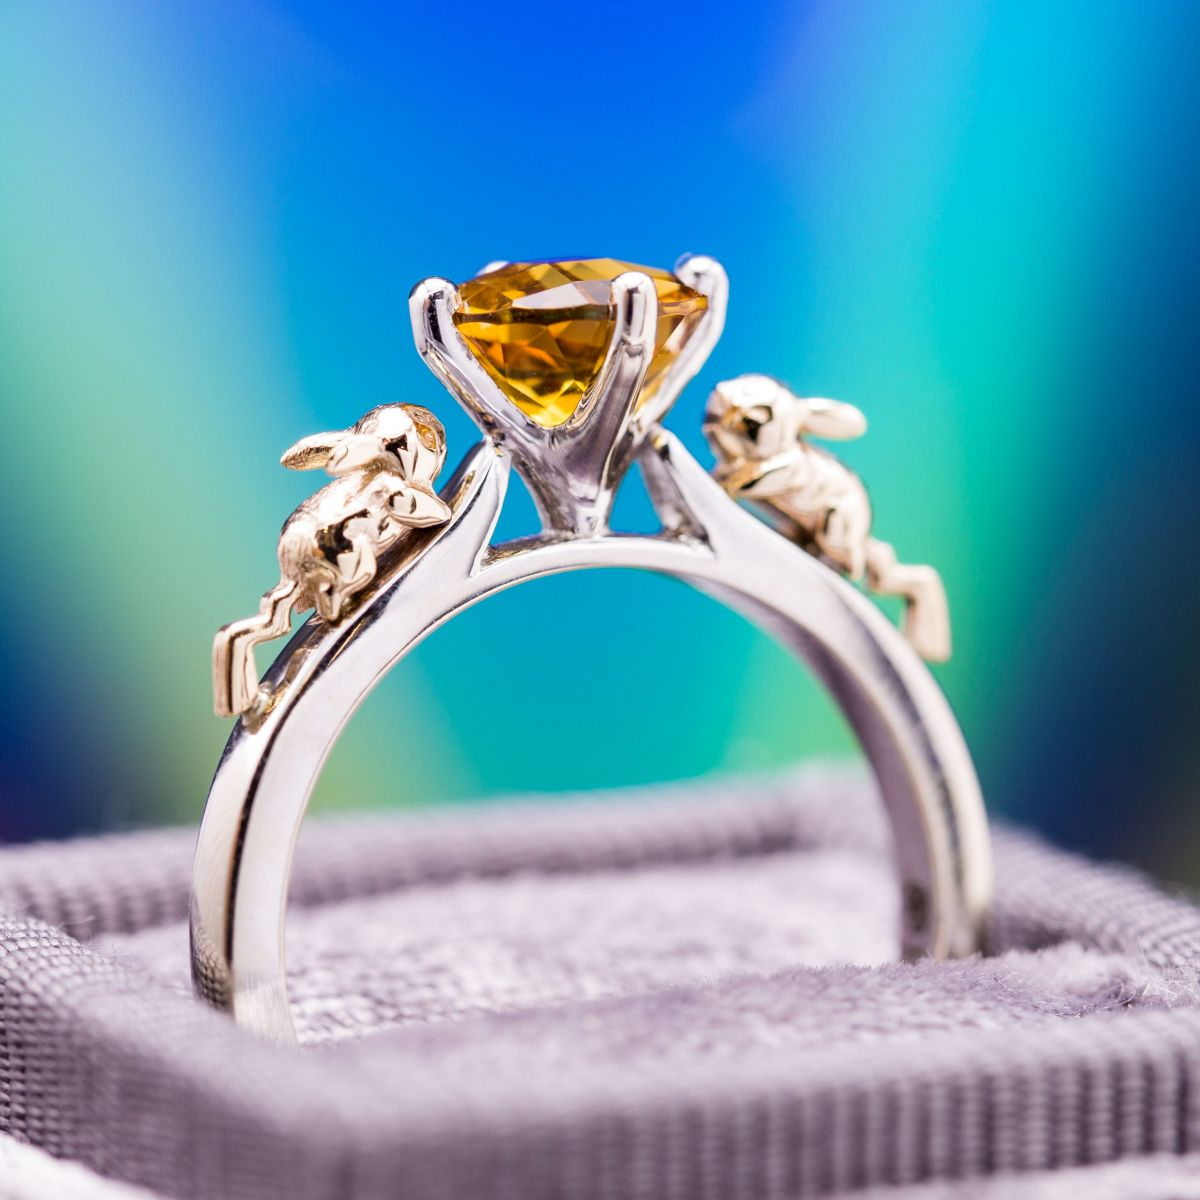 A Pokemon Fan S Wonderfully Whimsical Concept Features Yellow Gold Pikachus Dashing Up The White Engagement Ring Shank Toward Bright Orange Citrine